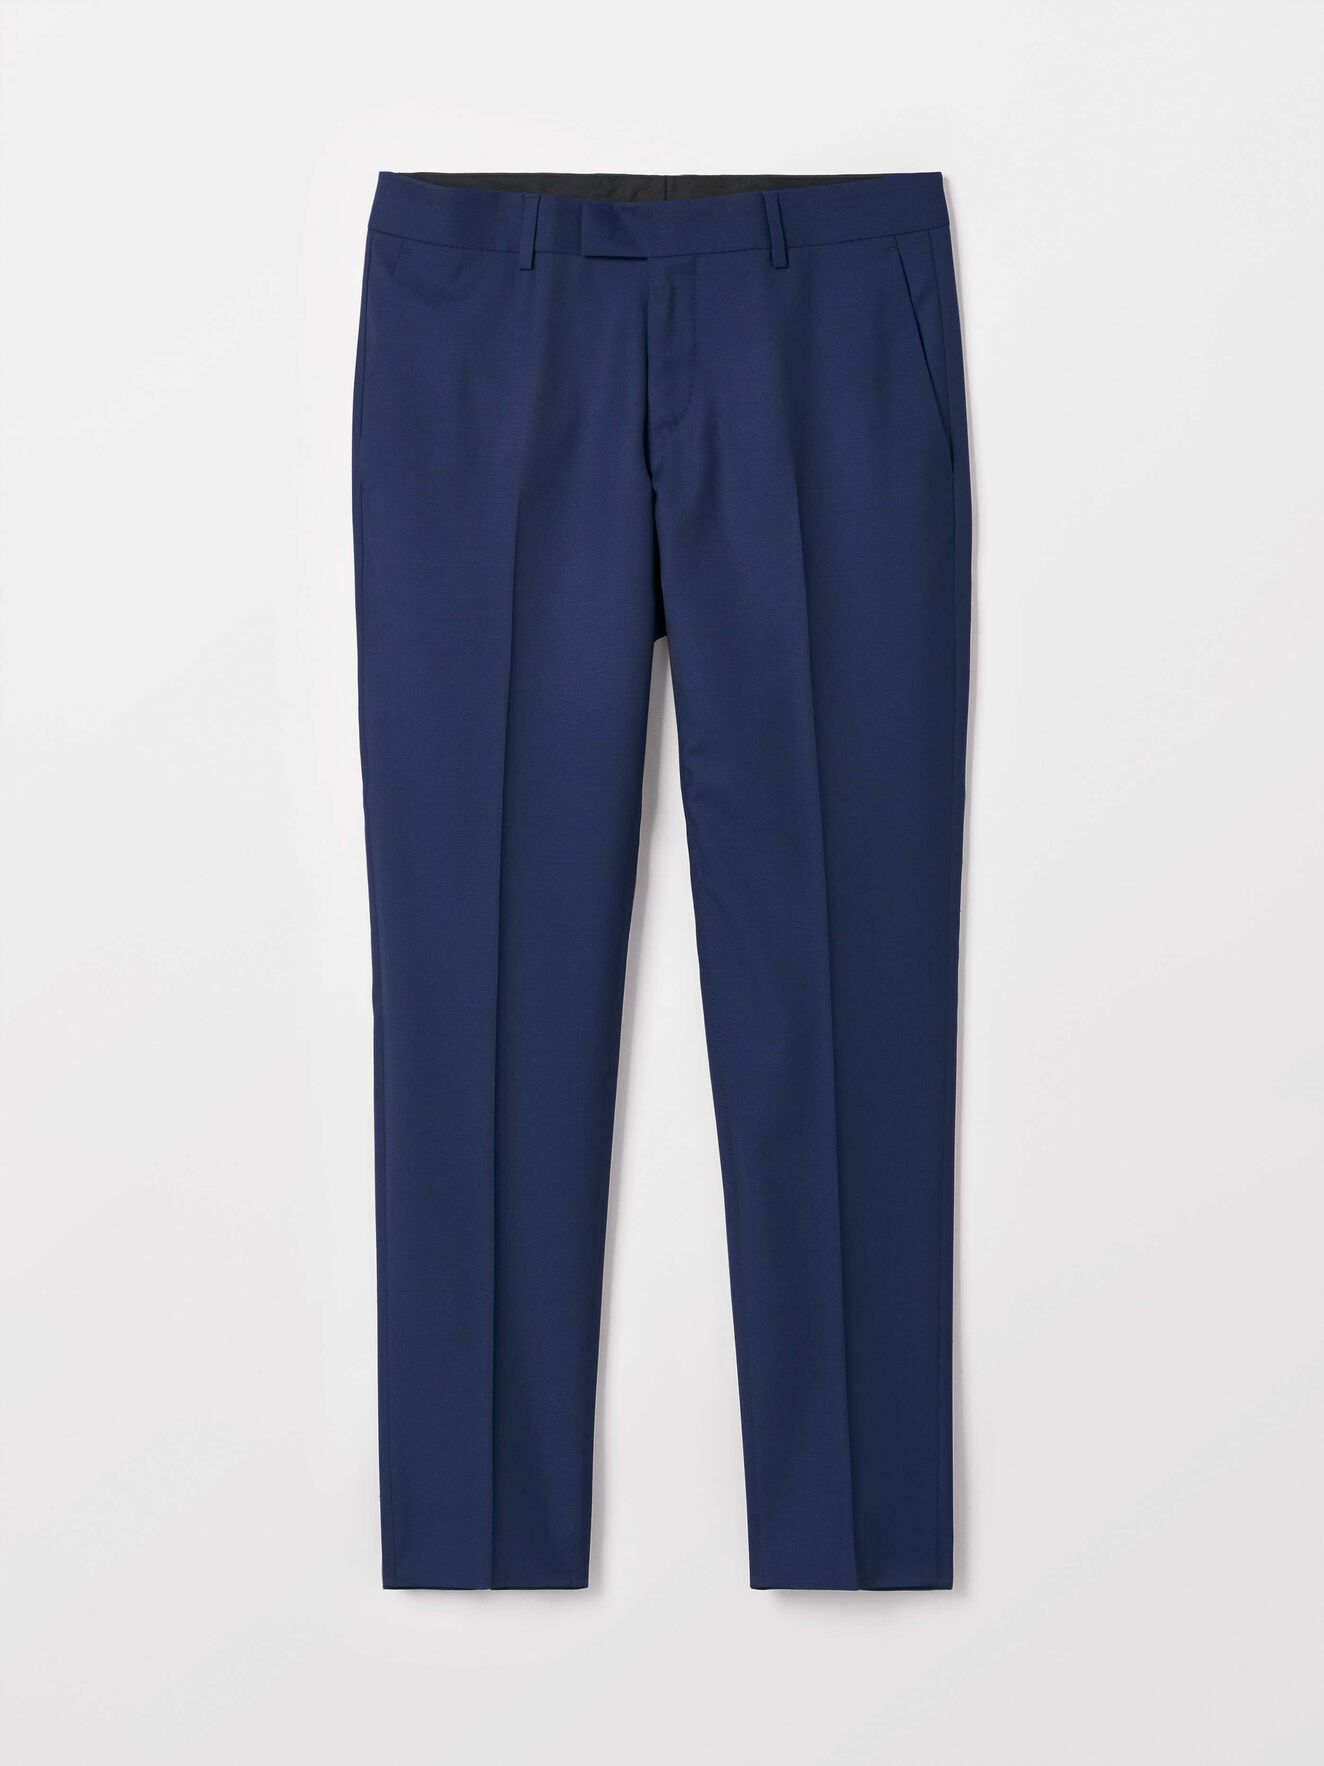 Tordon  Trousers in Royal Blue from Tiger of Sweden